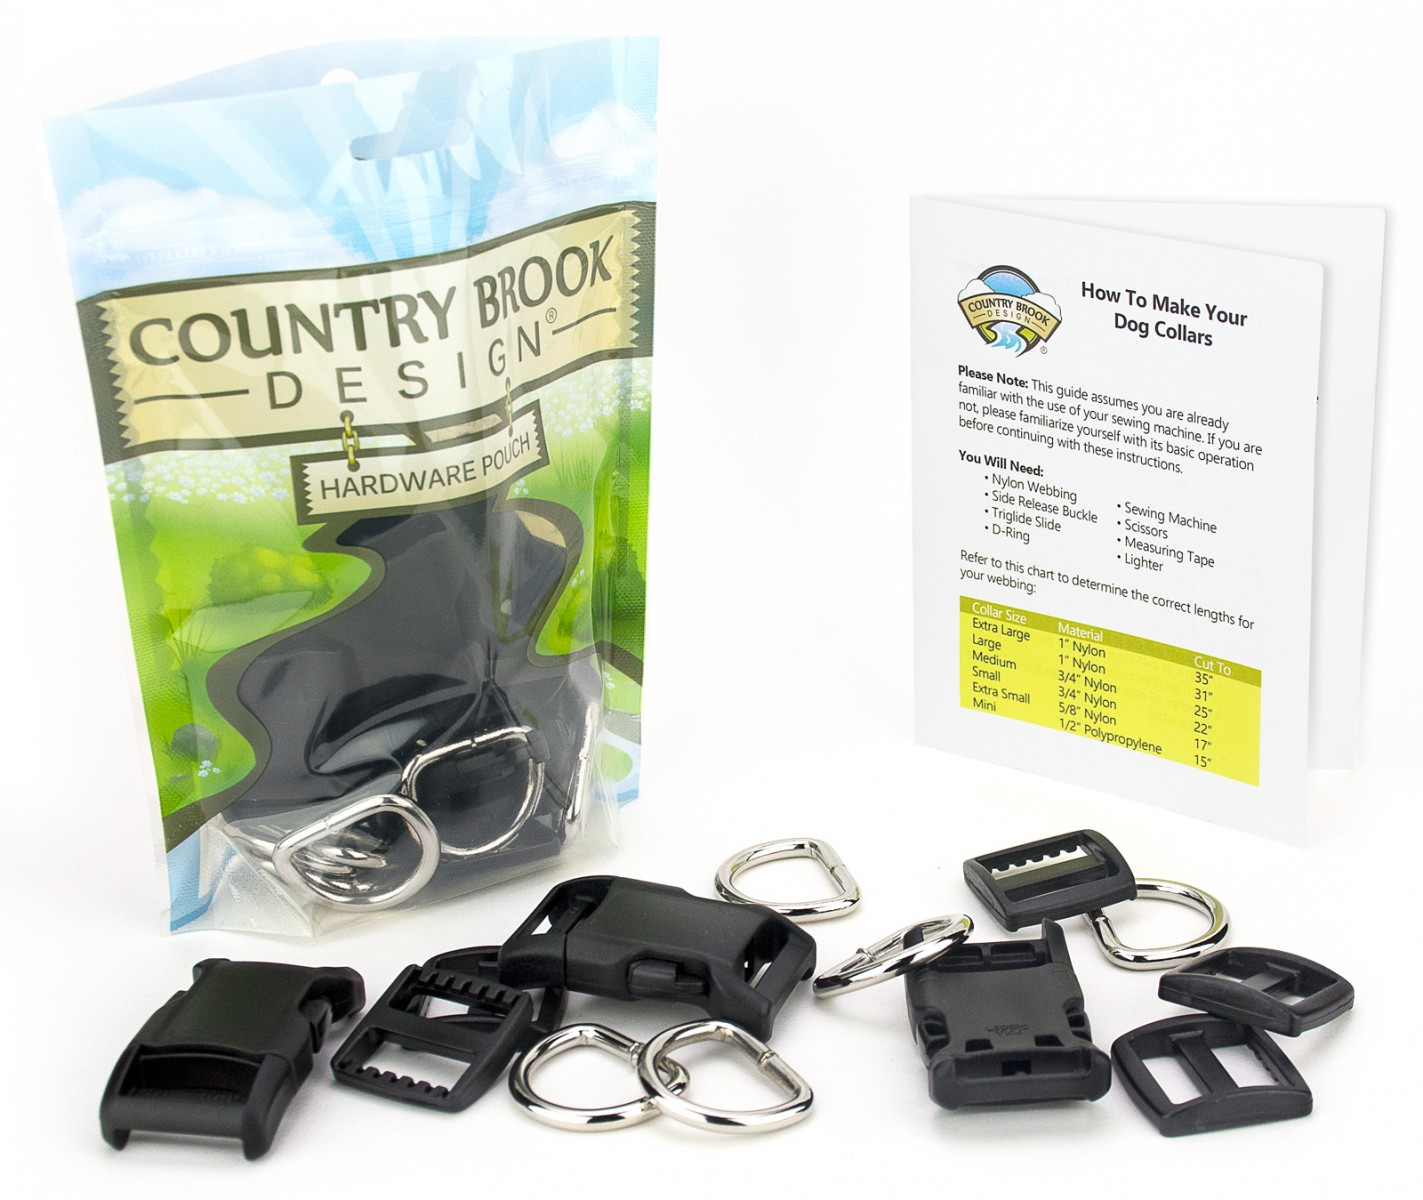 ck bla 1 10 dog collar kit package view dog collar hardware kits includes instructions!